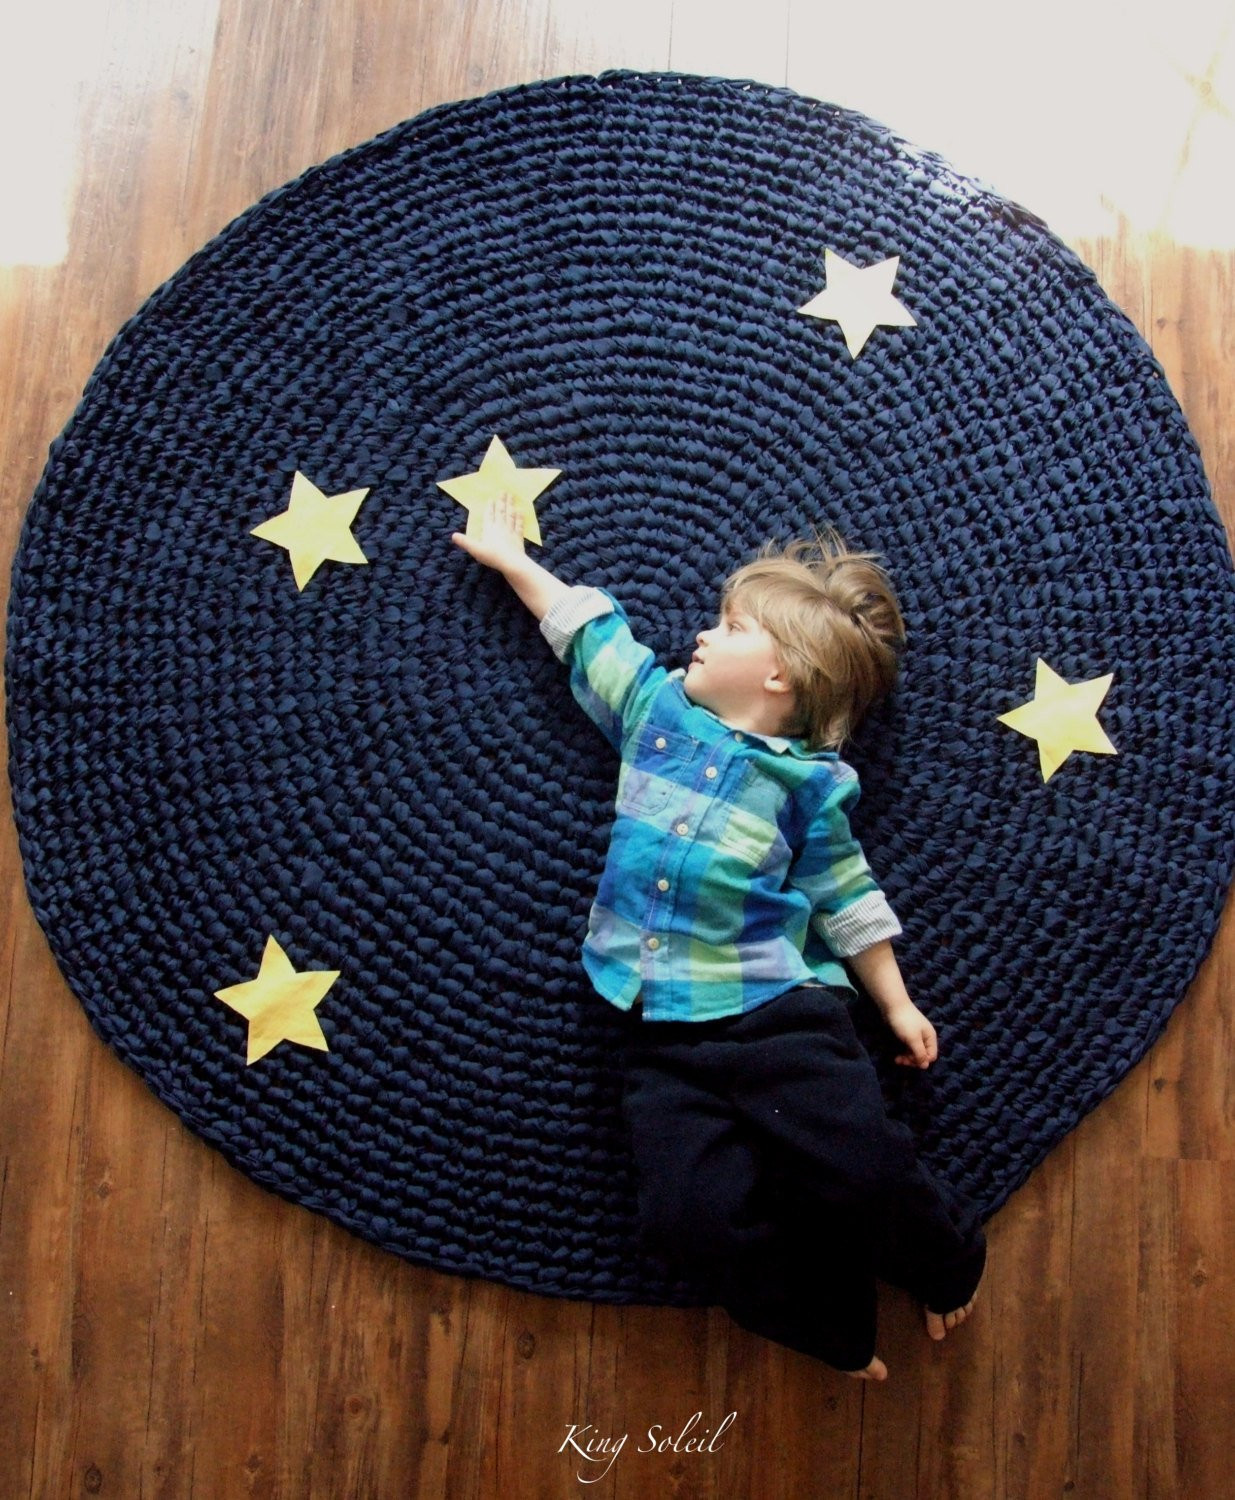 Crochet Rug Best Of Kids Rug Reach for the Stars Navy Cotton Crochet Rug with Of Top 44 Photos Crochet Rug